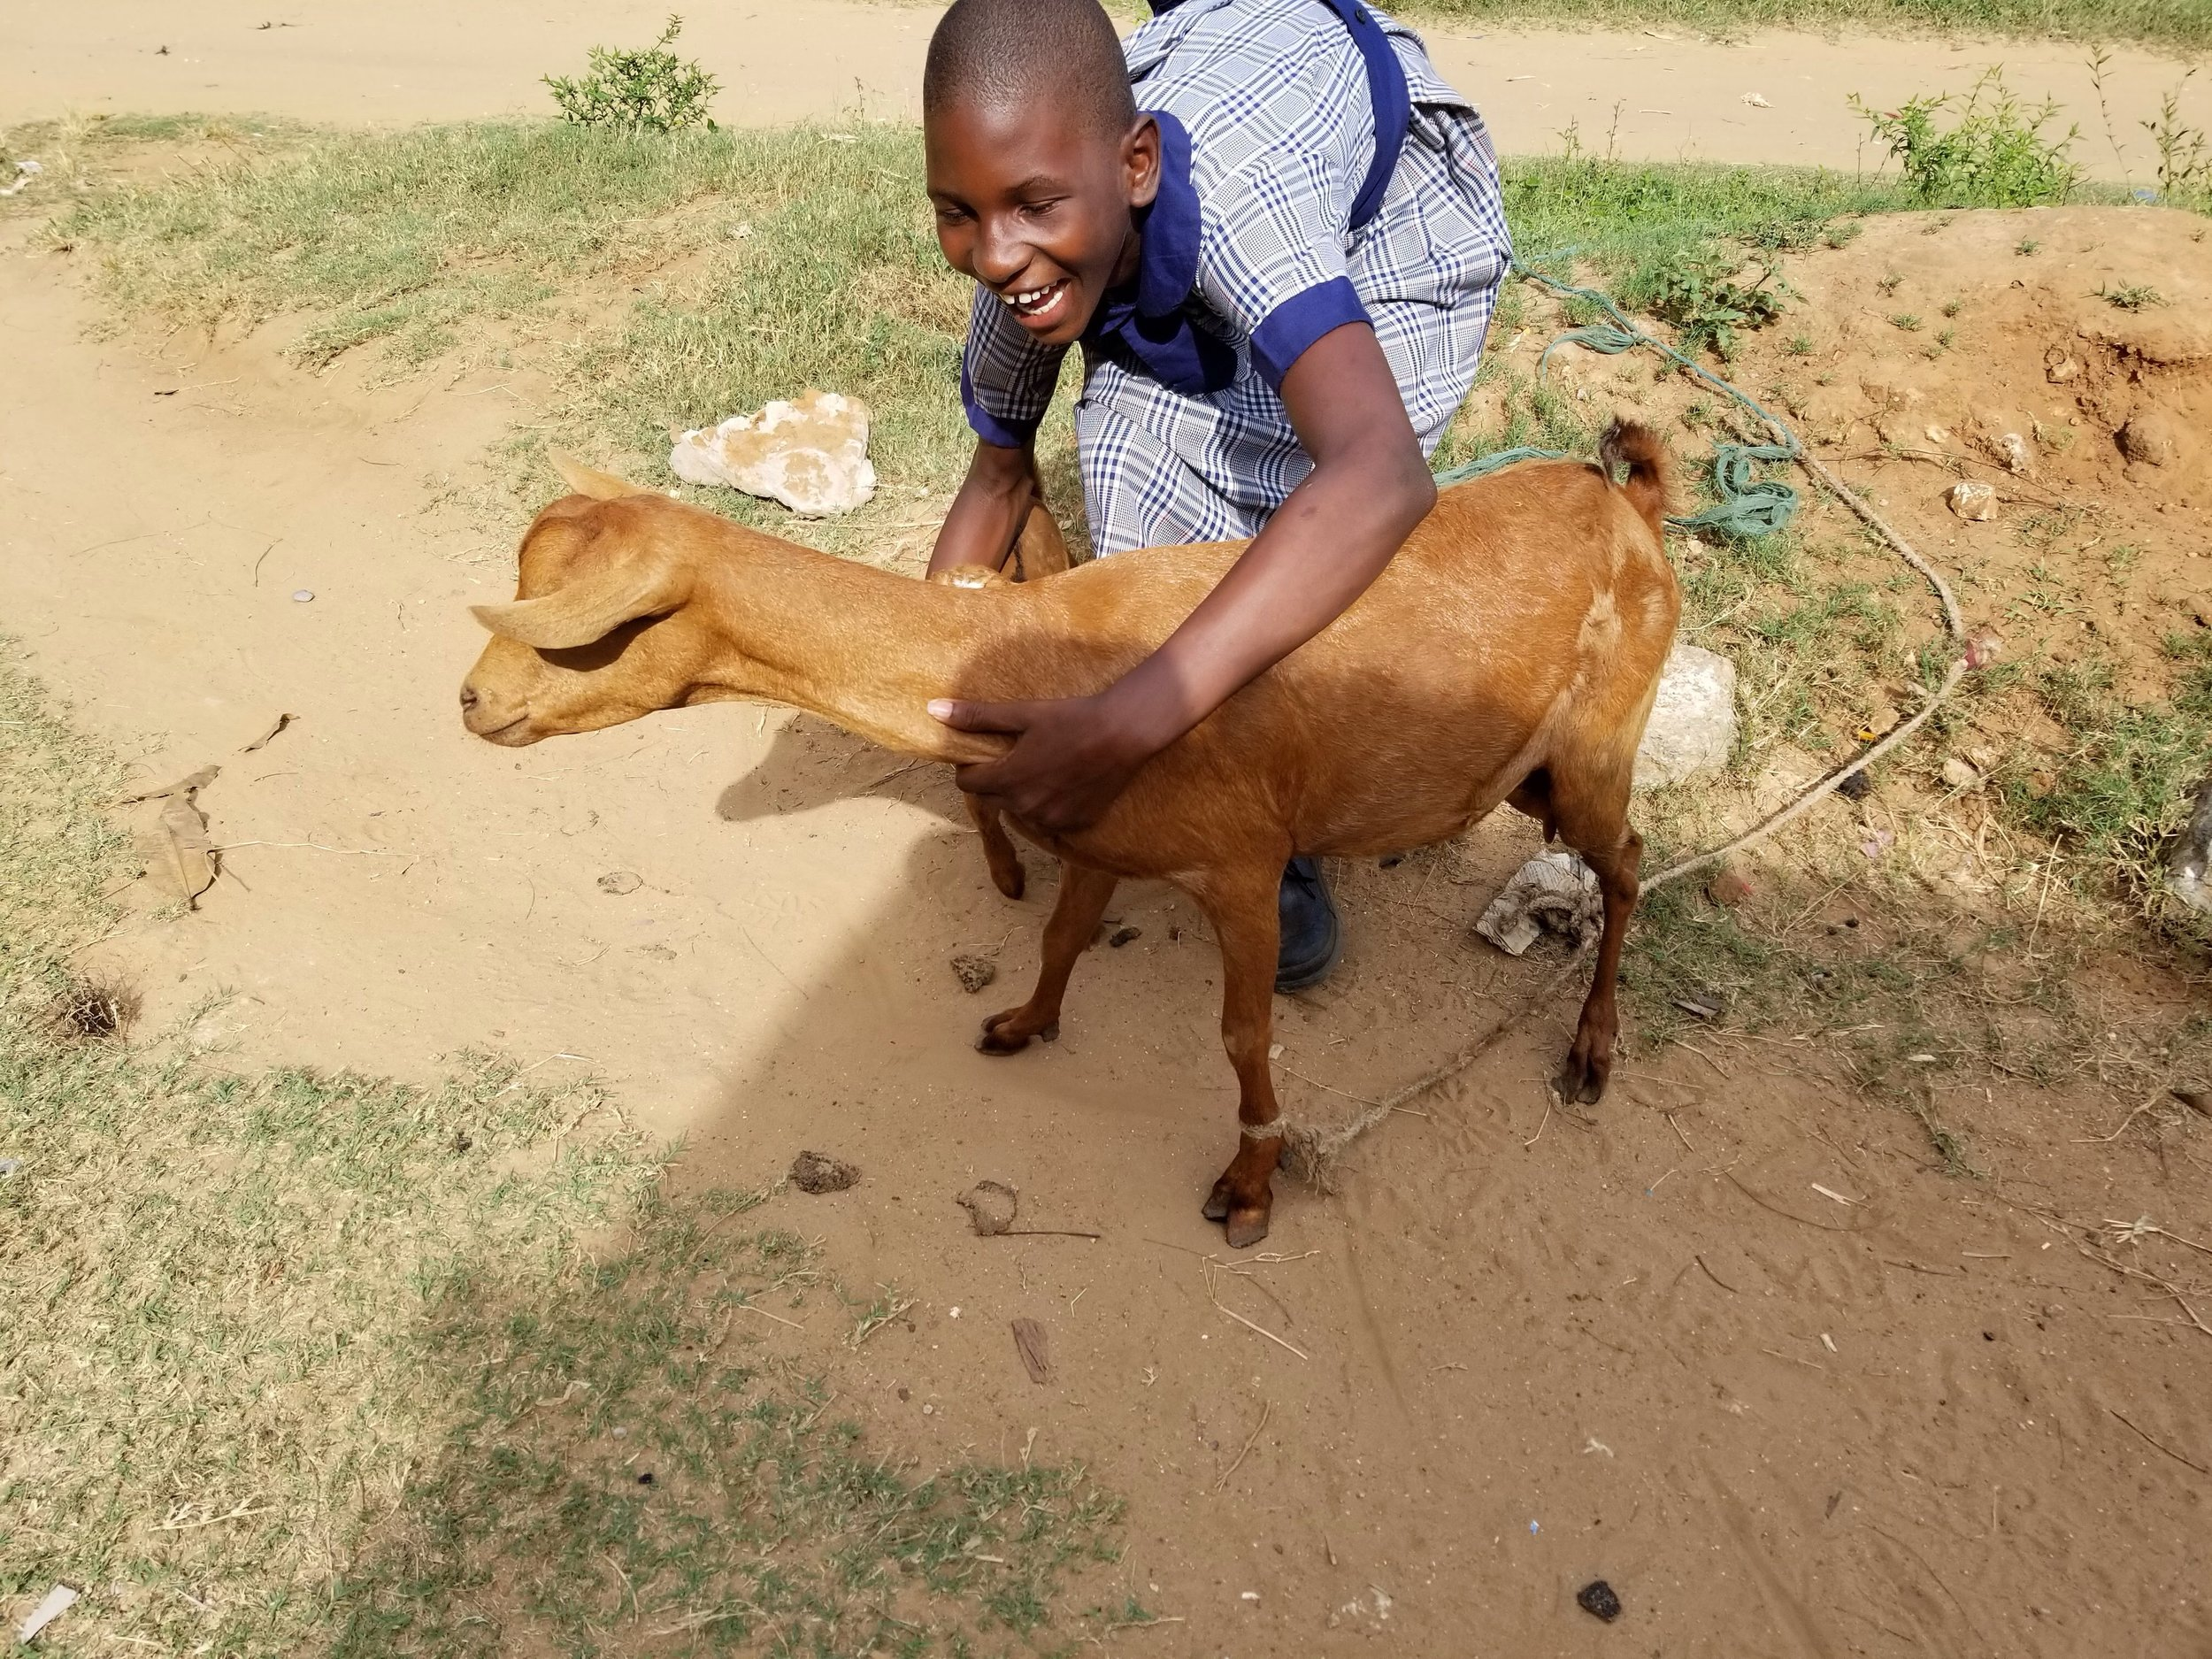 I wish you could have heard her laughter as she tried to get a goat to pose for a picture!!